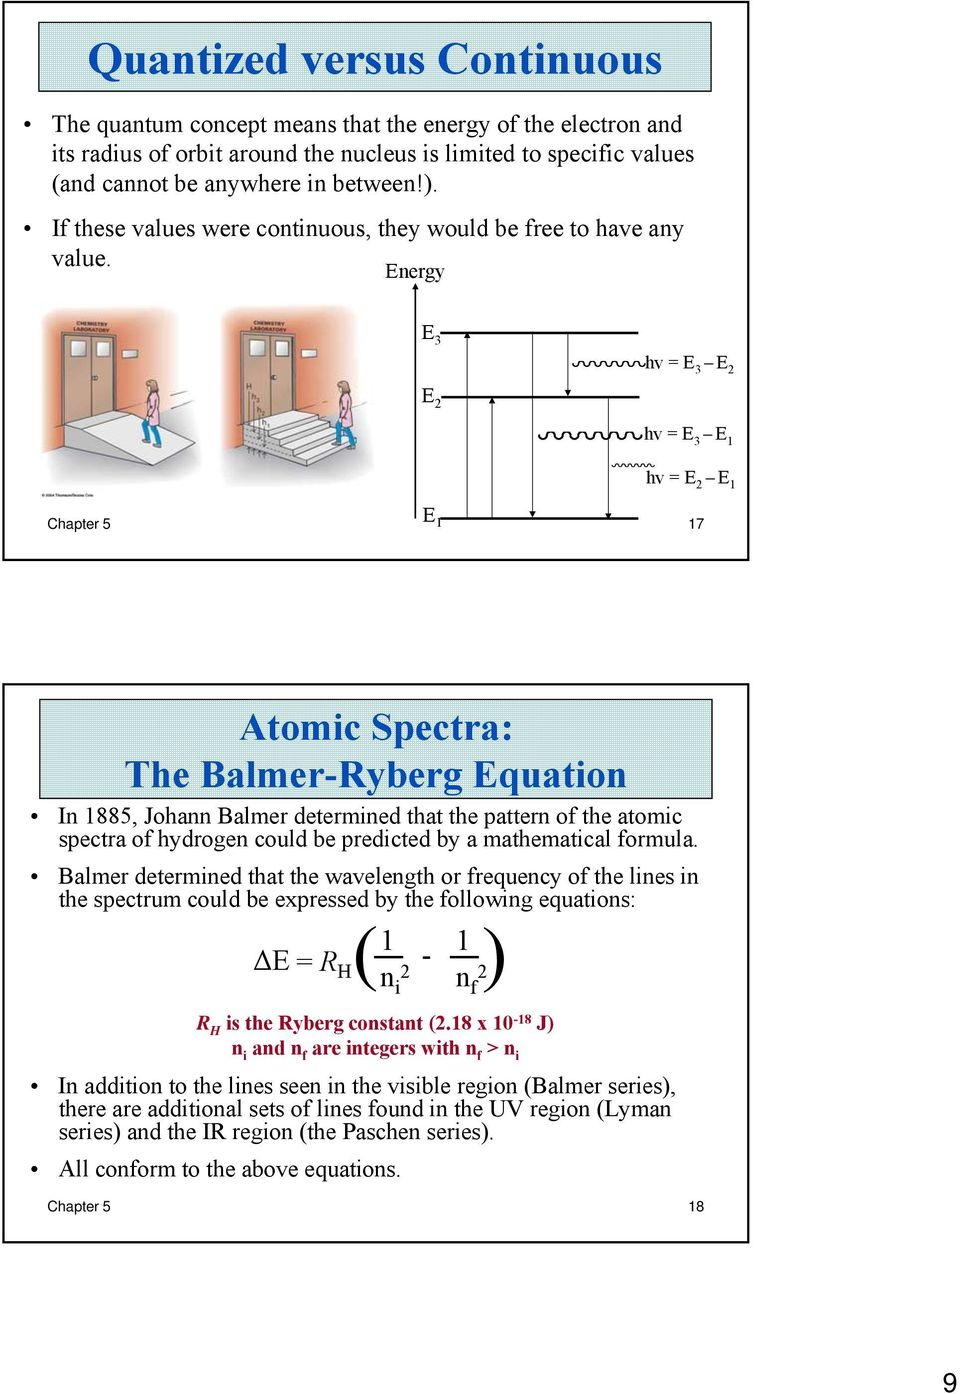 Energy E 3 hv = E 3 E 2 E 2 hv = E 3 E 1 hv = E 2 E 1 Chapter 5 E 1 17 Atomic Spectra: The Balmer-Ryberg Equation In 1885, Johann Balmer determined that the pattern of the atomic spectra of hydrogen